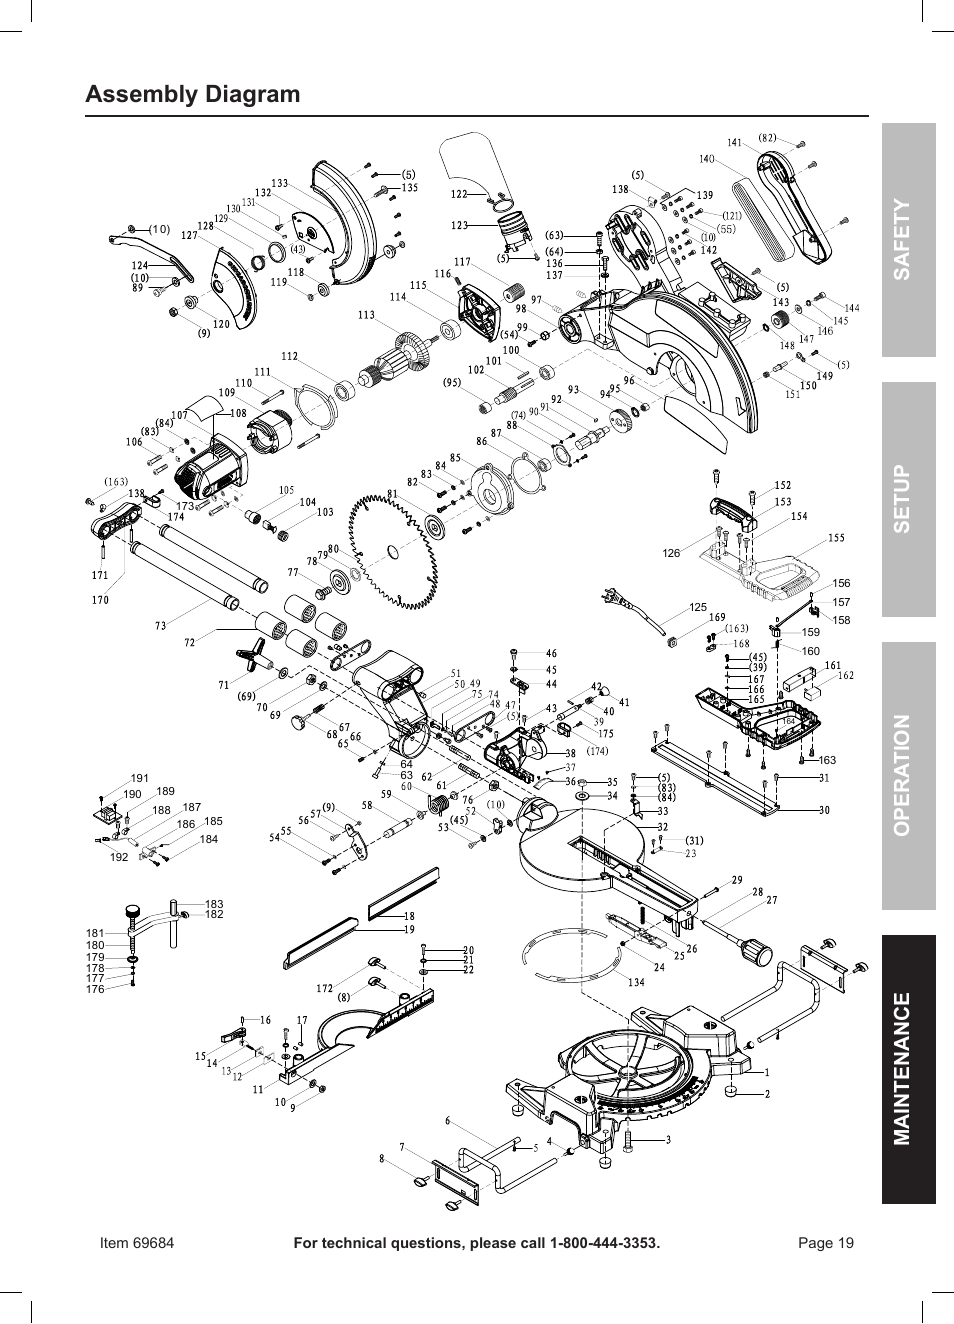 Assembly diagram, Safety opera tion maintenance setup